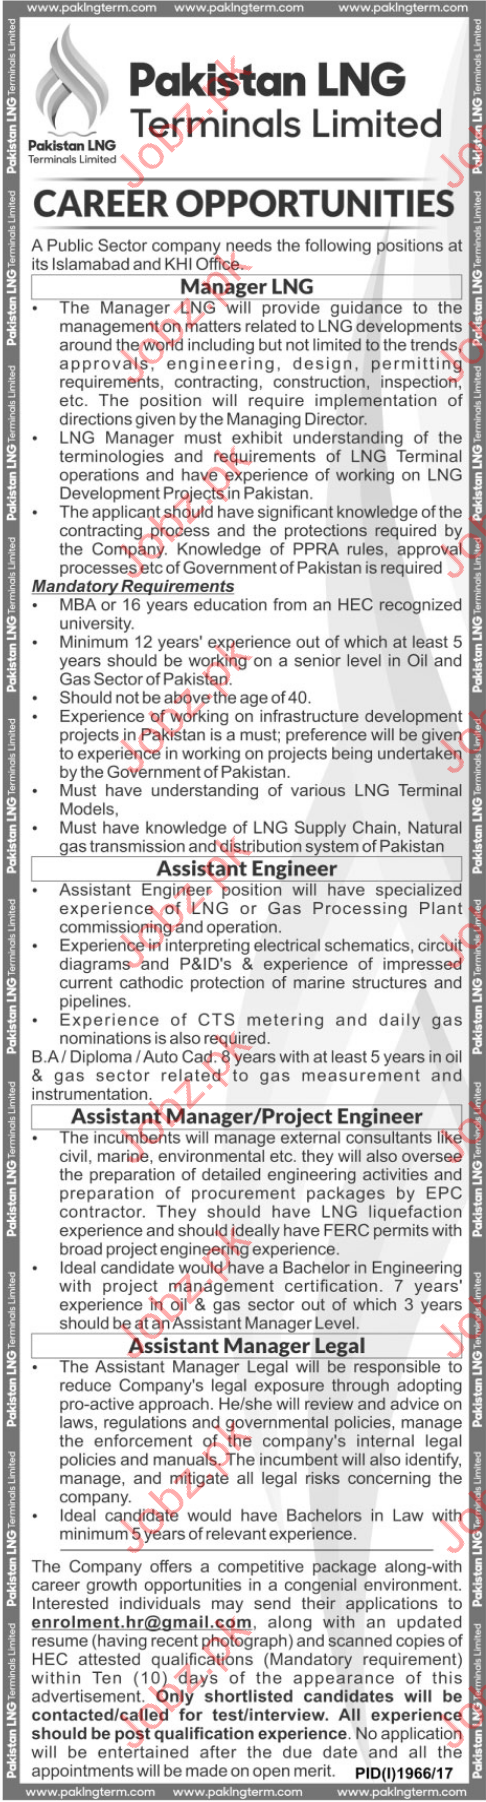 Pakistan LNG Terminals Ltd Career Opportunities